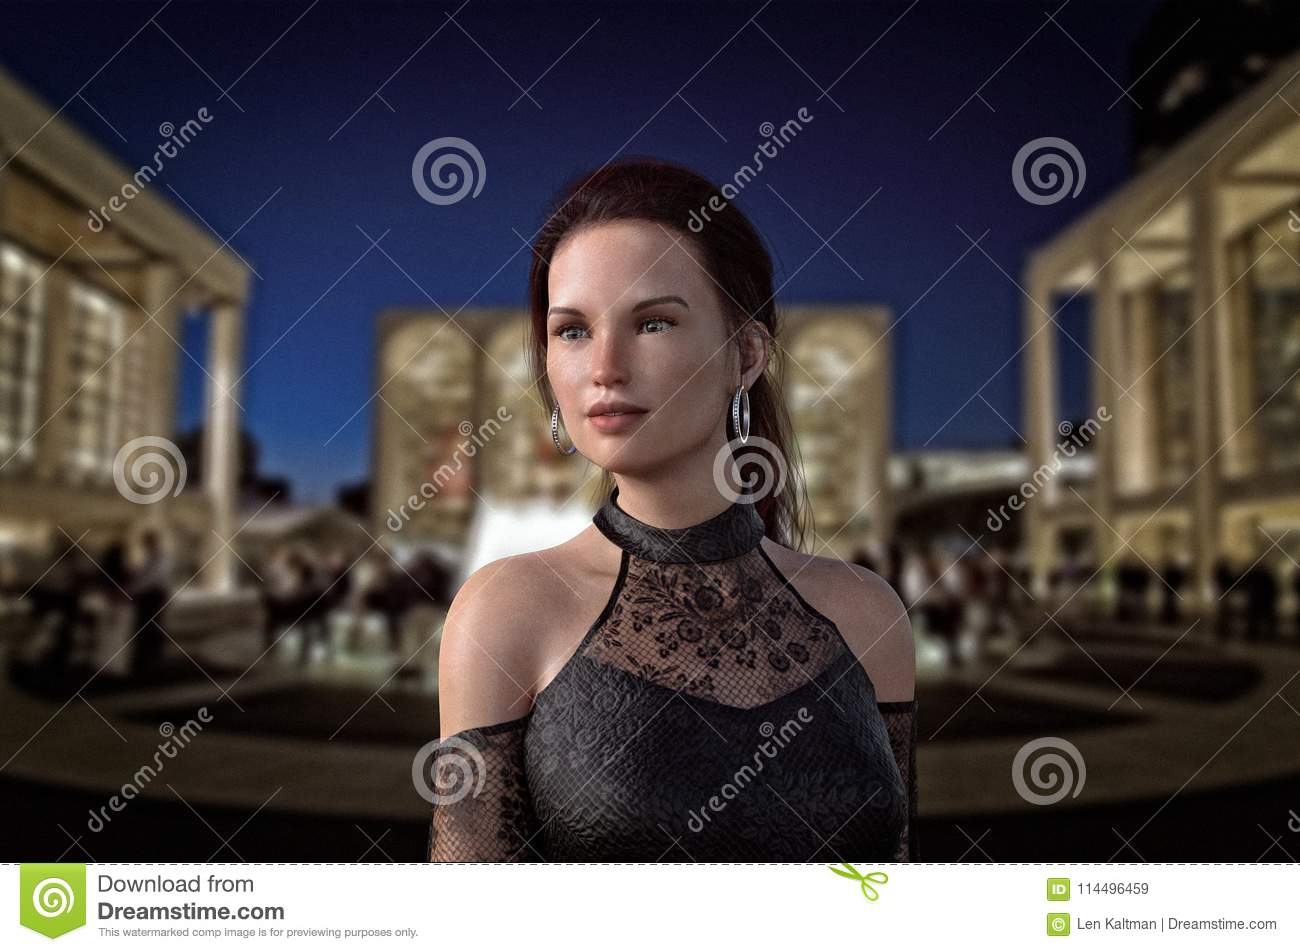 Woman in evening gown enjoying Lincoln Center at night